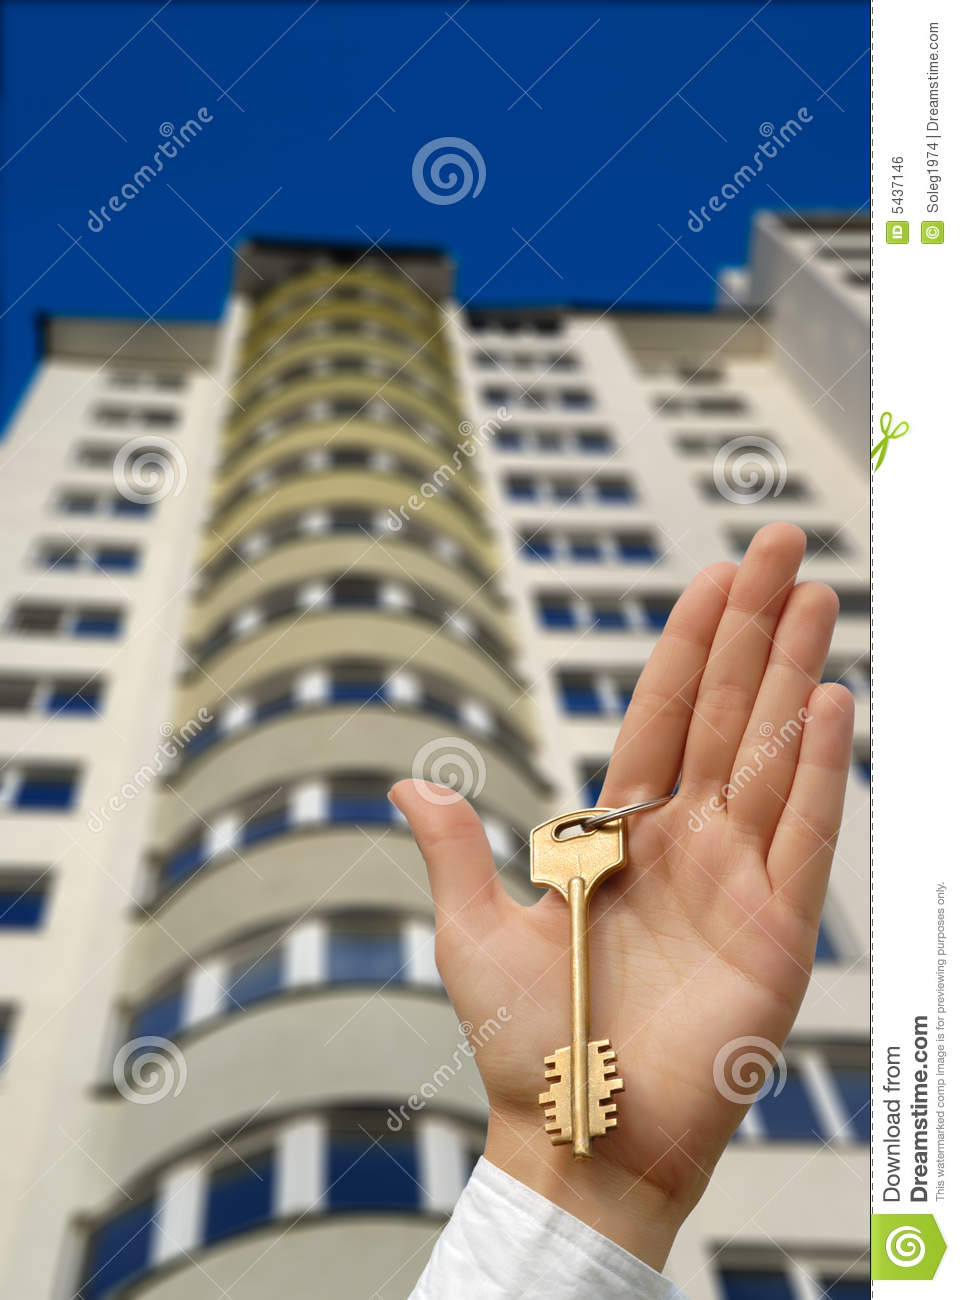 Buying new apartment stock photo. Image of home, house ...